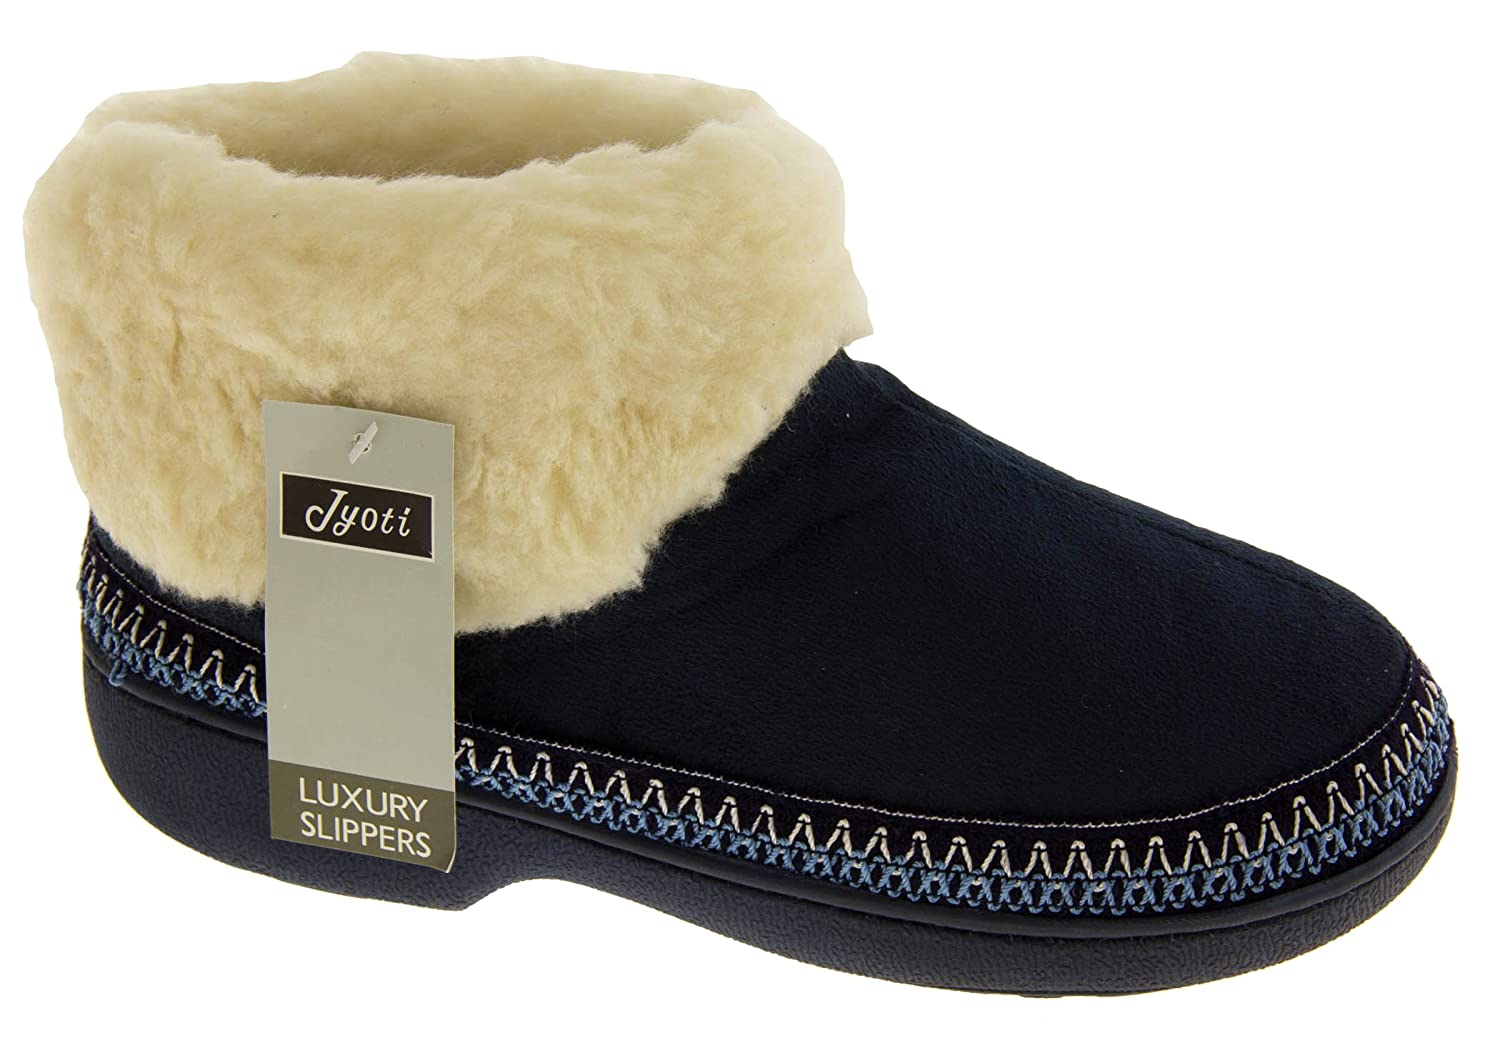 Footwear Studio New Ladies Warm Lined Outdoor Sole Slipper Boots Slippers Boot Size 3 4 5 6 7 8